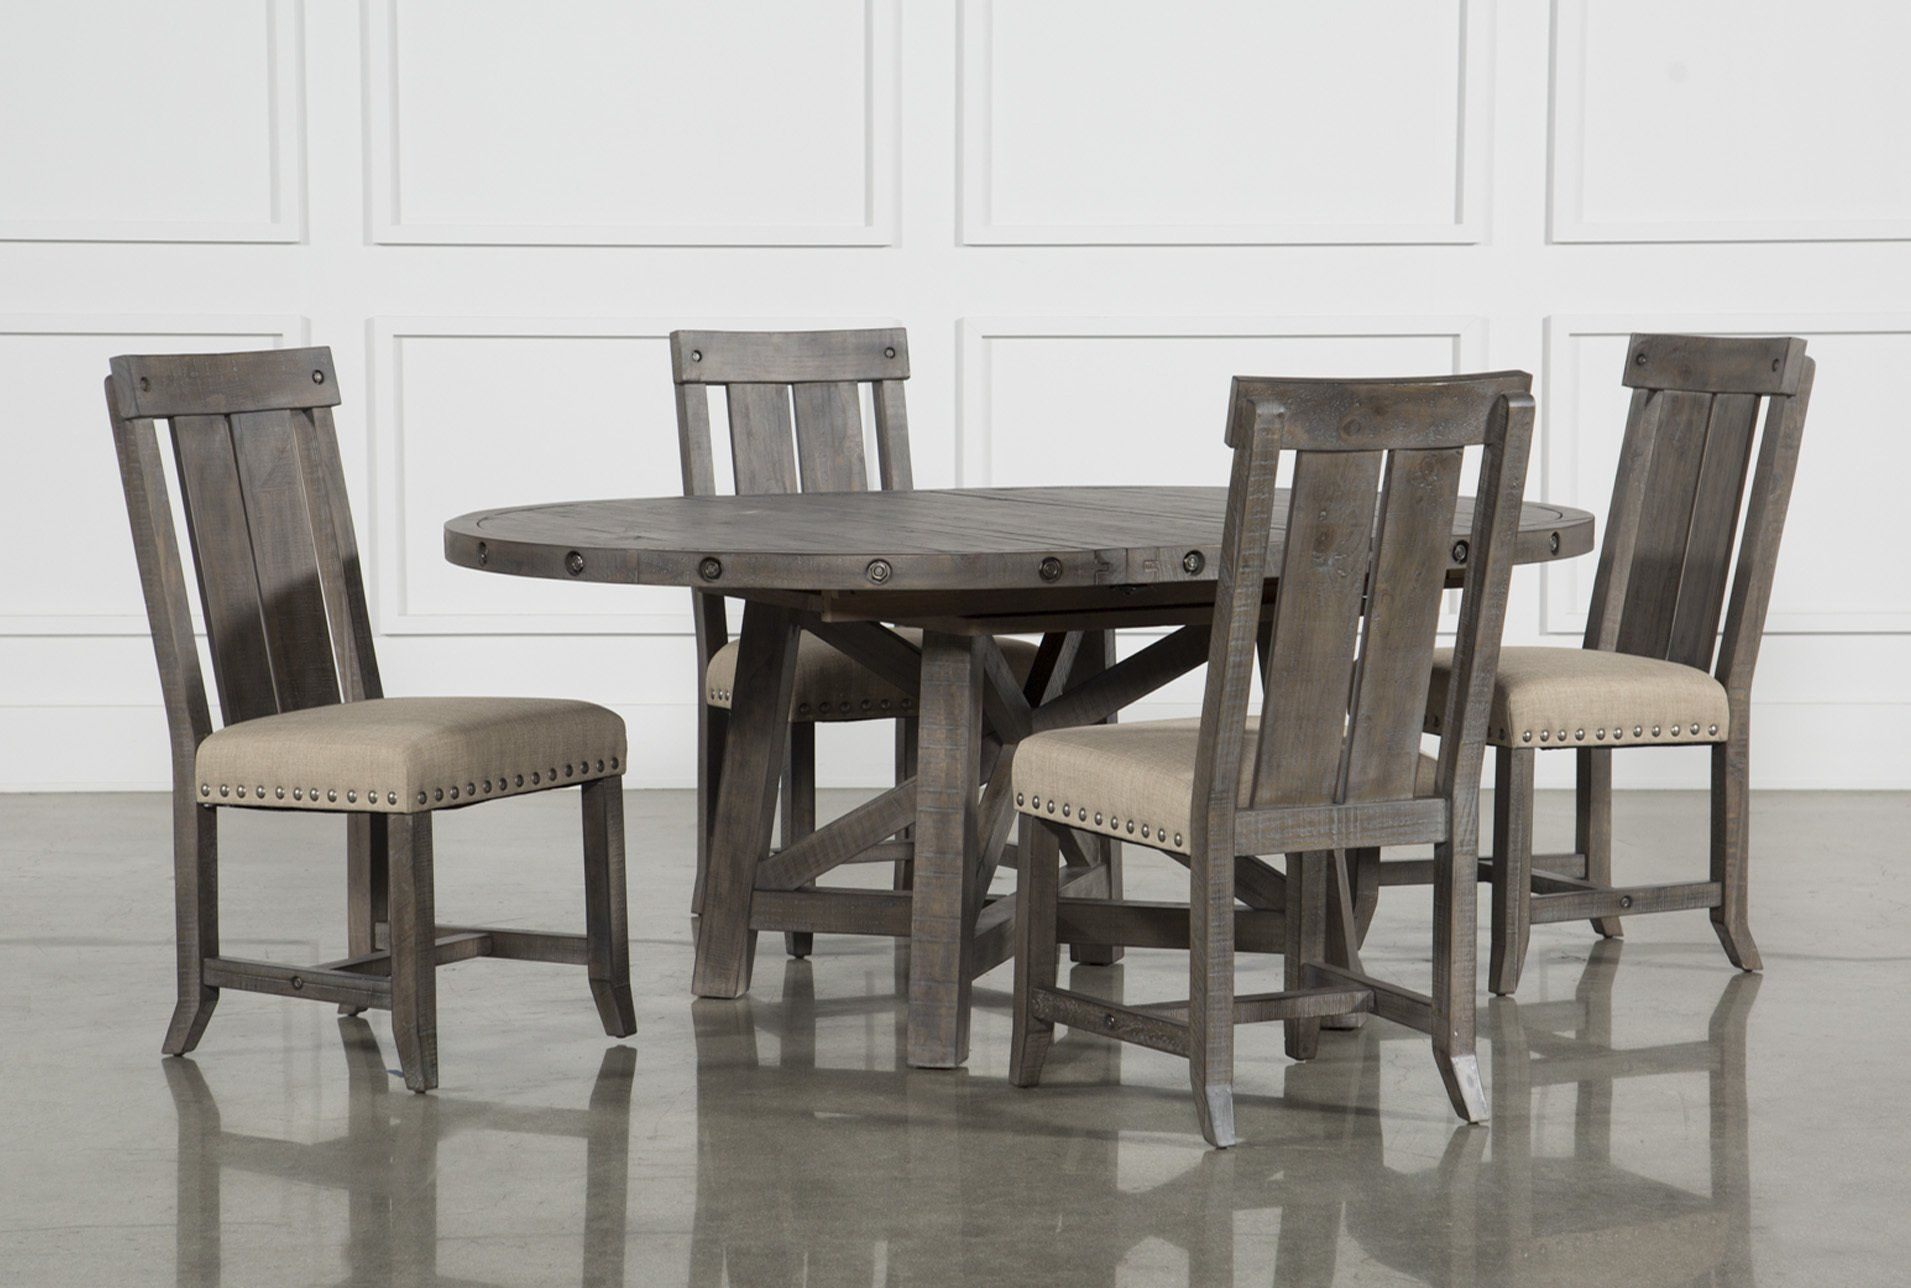 be3d3822a Jaxon Grey 5 Piece Round Extension Dining Set W Wood Chairs ...